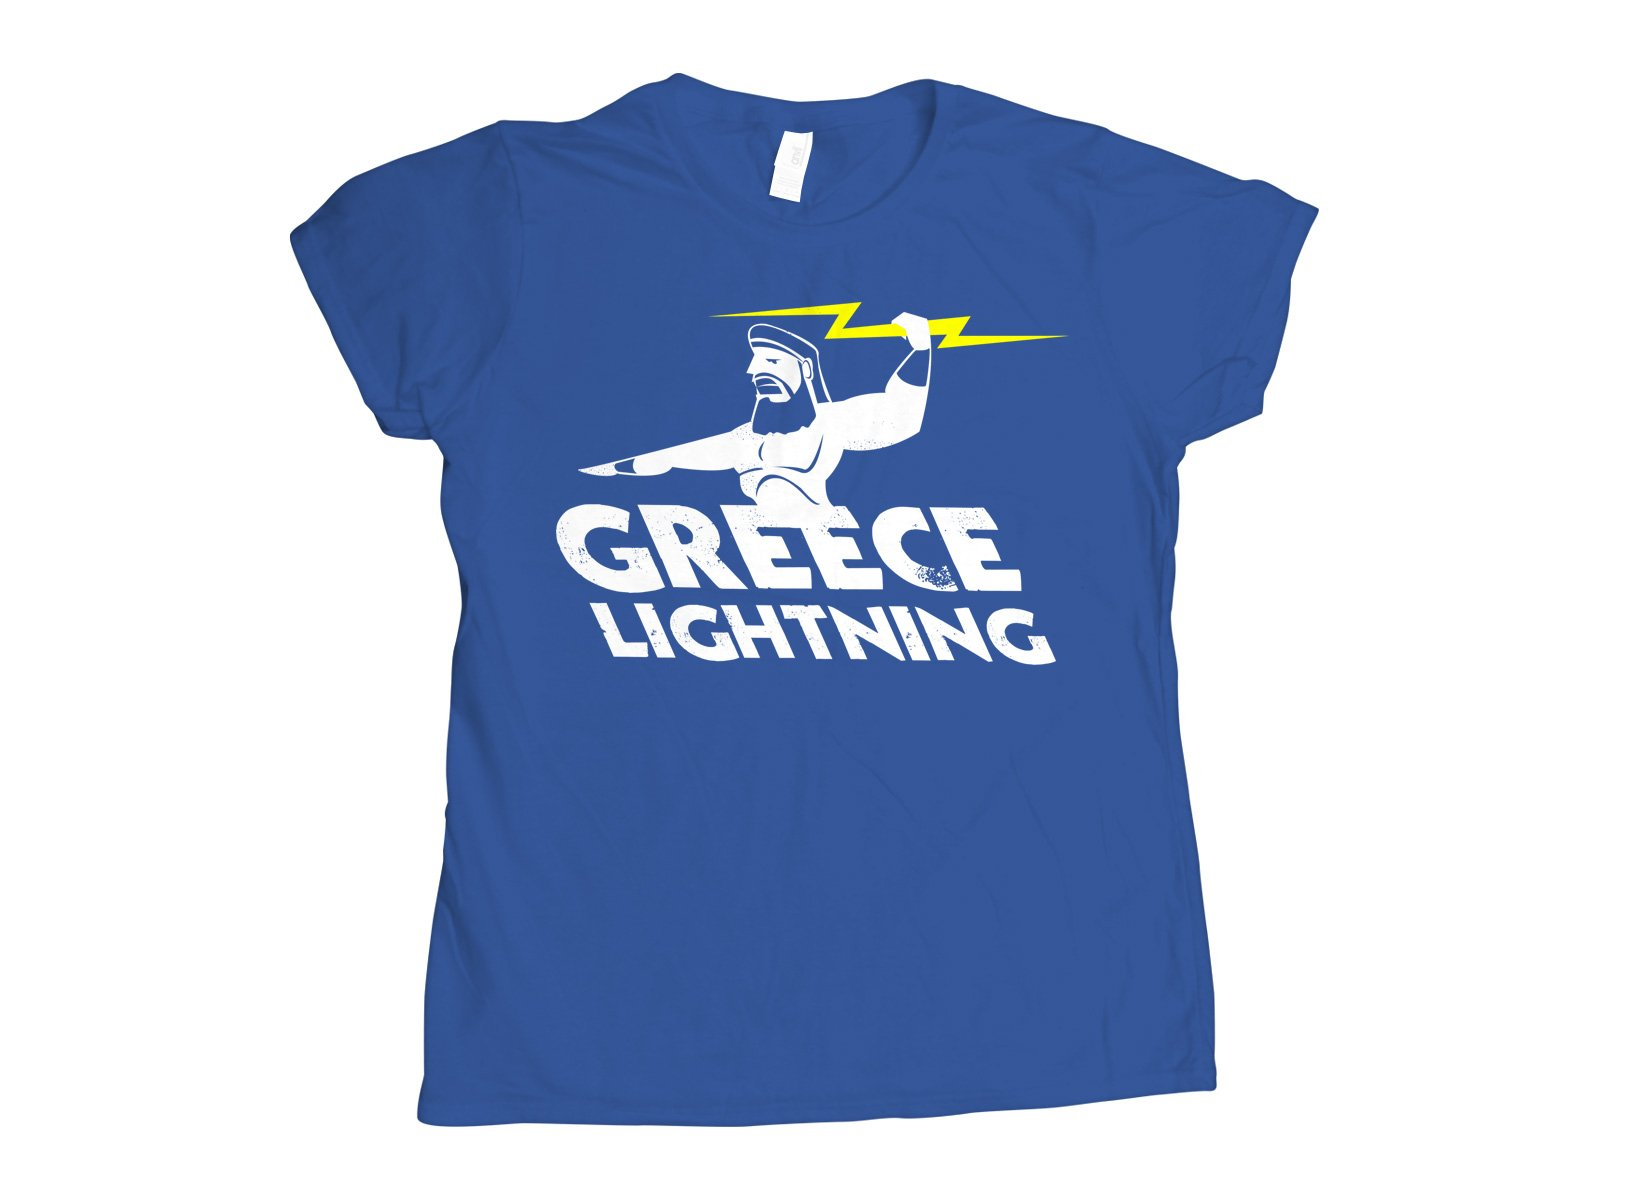 Greece Lightning on Womens T-Shirt